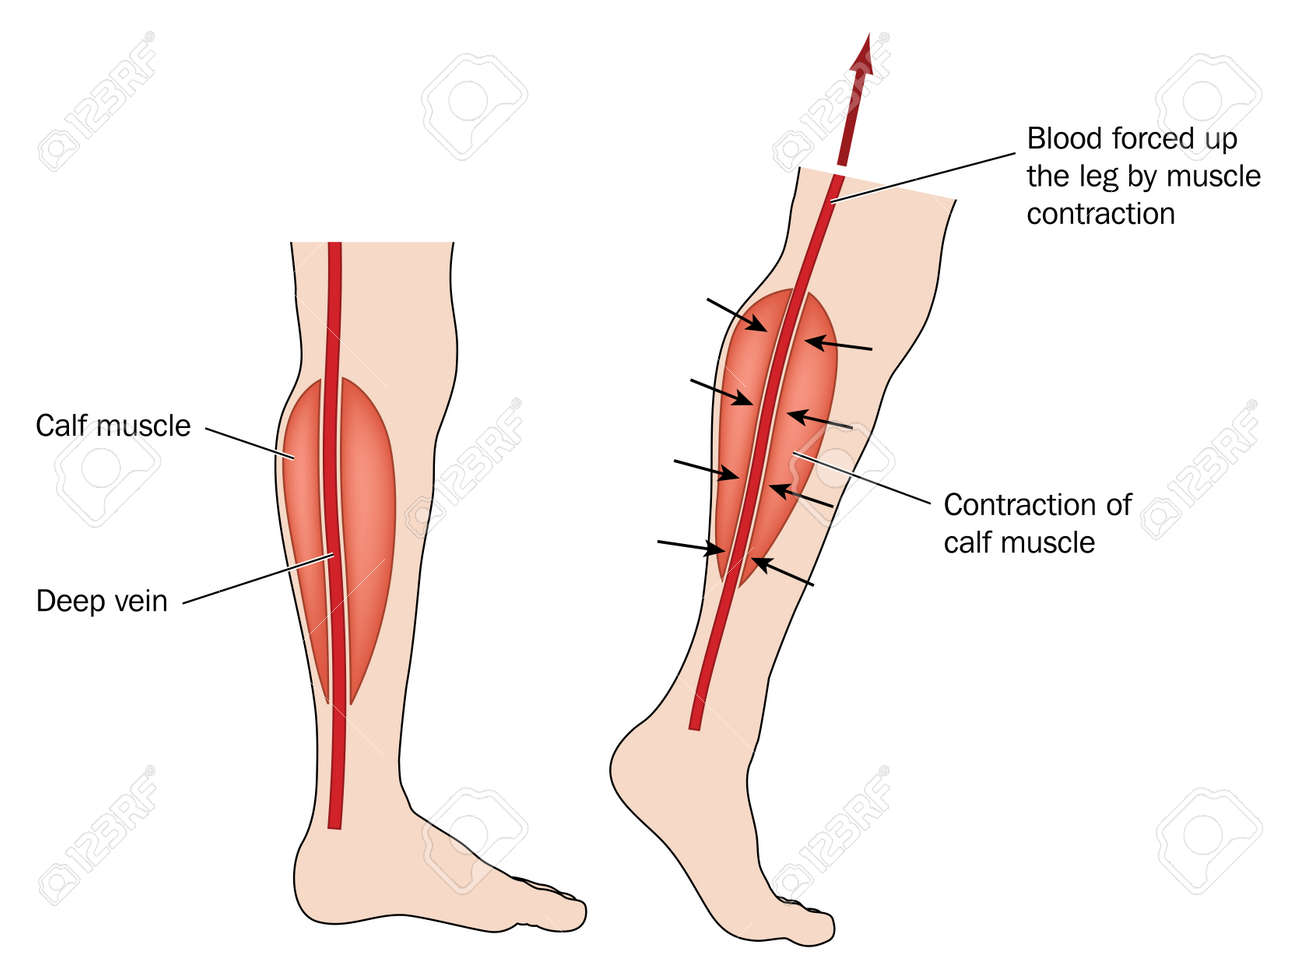 Drawing To Show Blood Forced Up From Legs Due To Calf Muscle ...